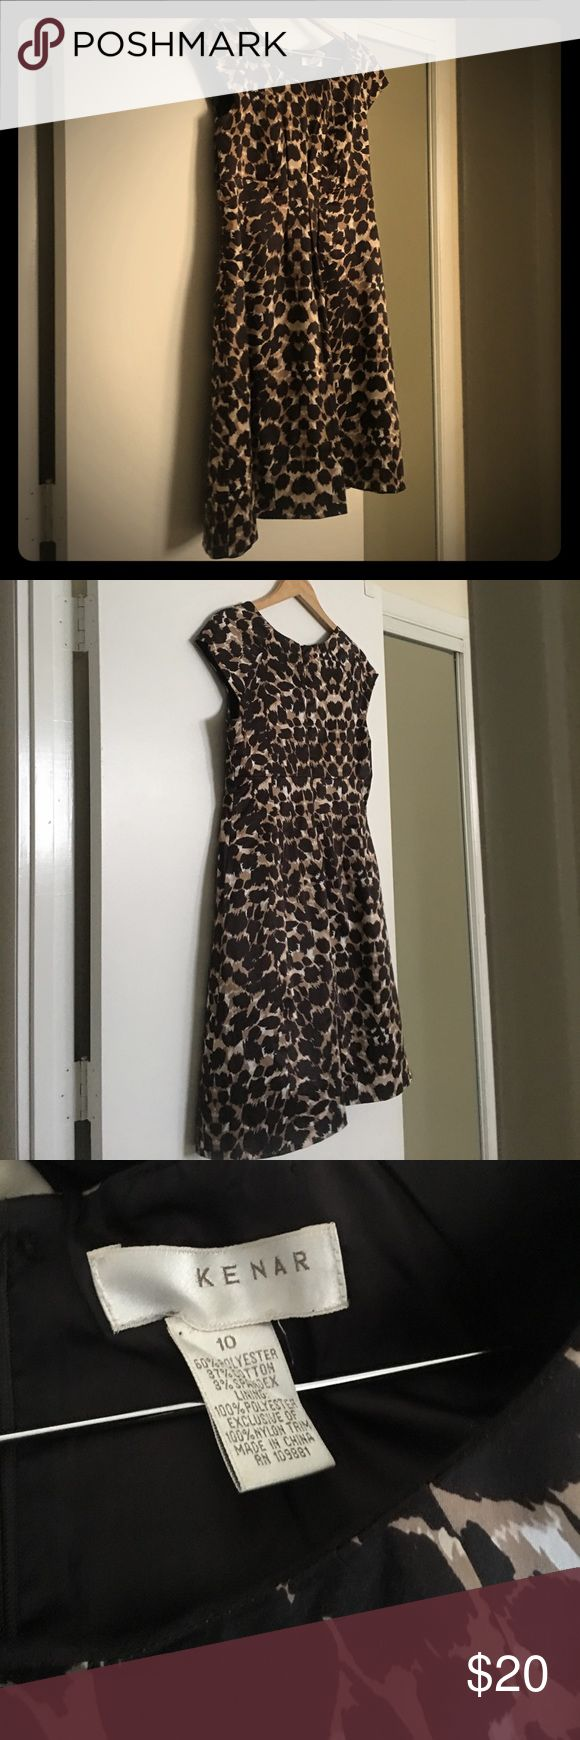 Leopard print cocktail dress with cap sleeves This a perfect party dress as an alternative to the LBD.  Light weight satin feel hugs your curves with a fit and flare look to add some swing to your step. Kenar Dresses Wedding